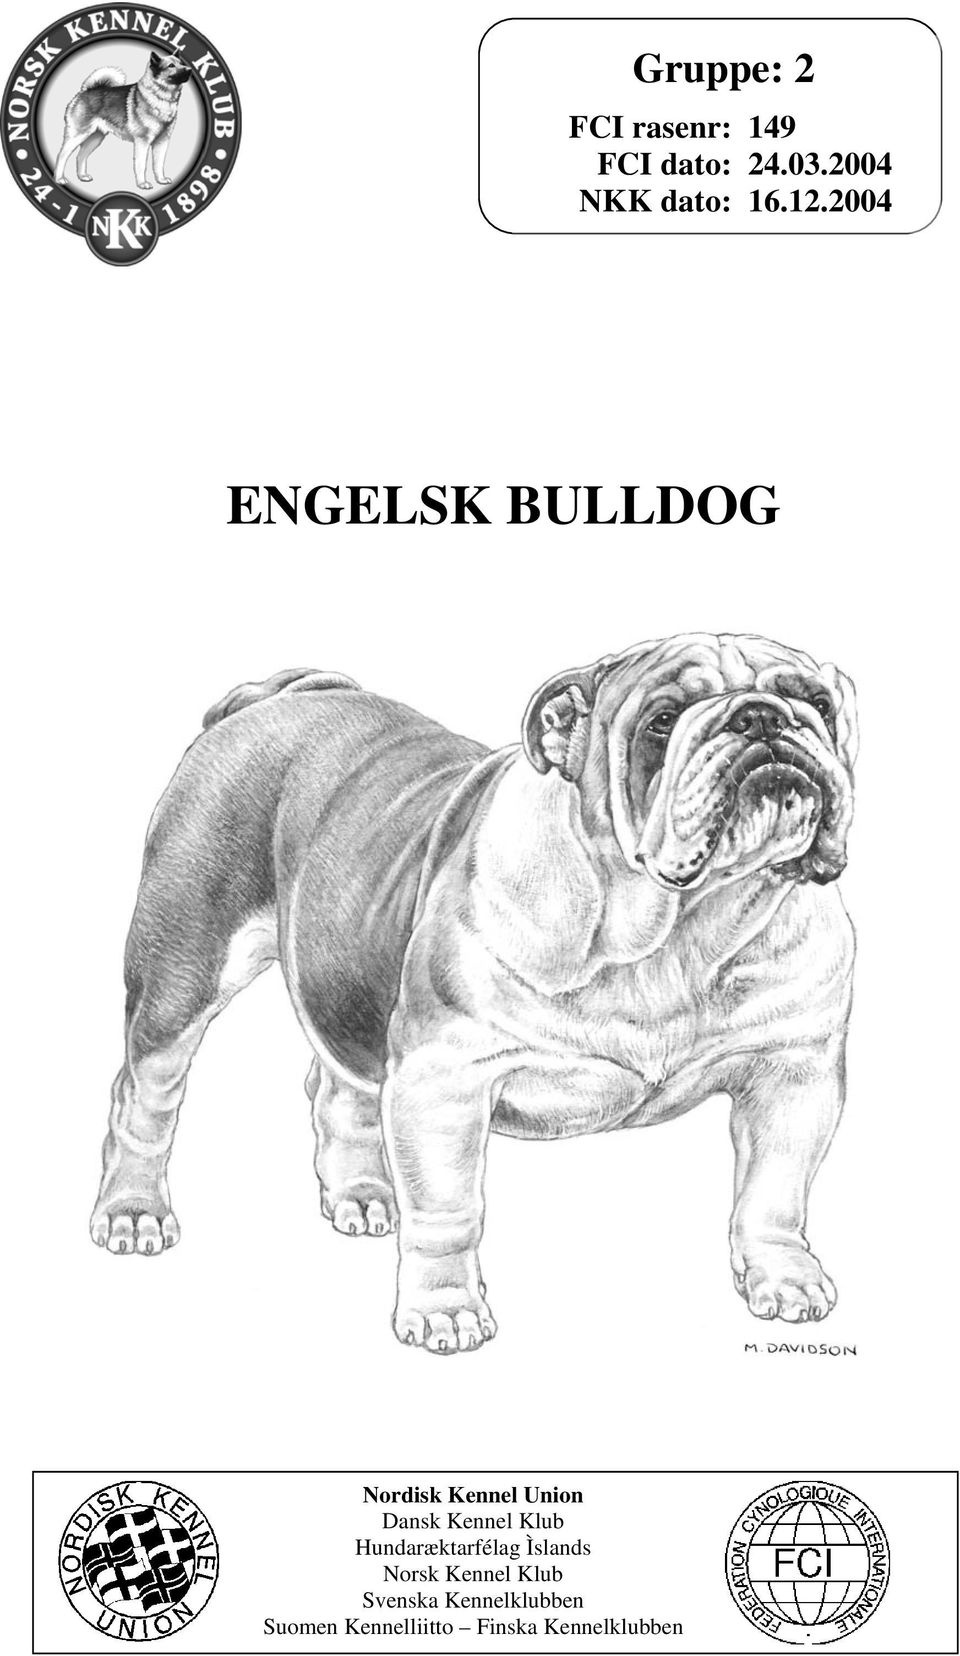 2004 ENGELSK BULLDOG Nordisk Kennel Union Dansk Kennel